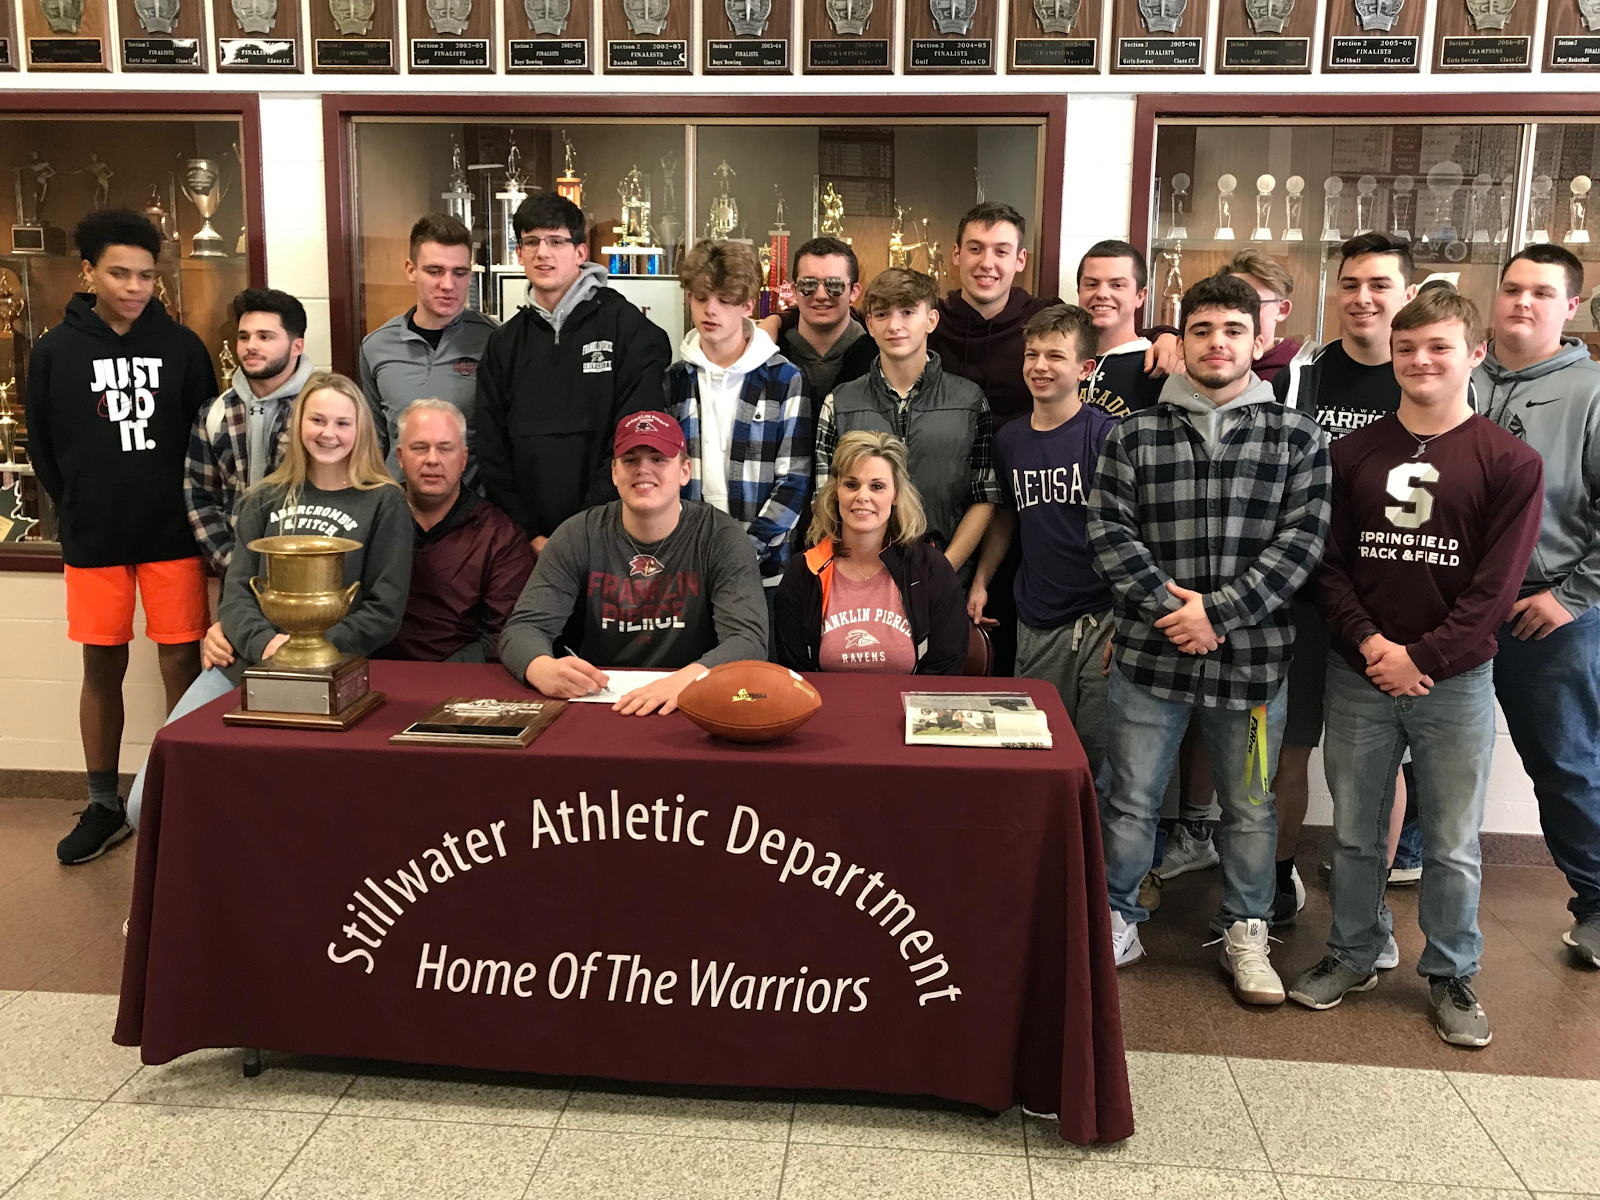 Students and family gathered with athlete at a table